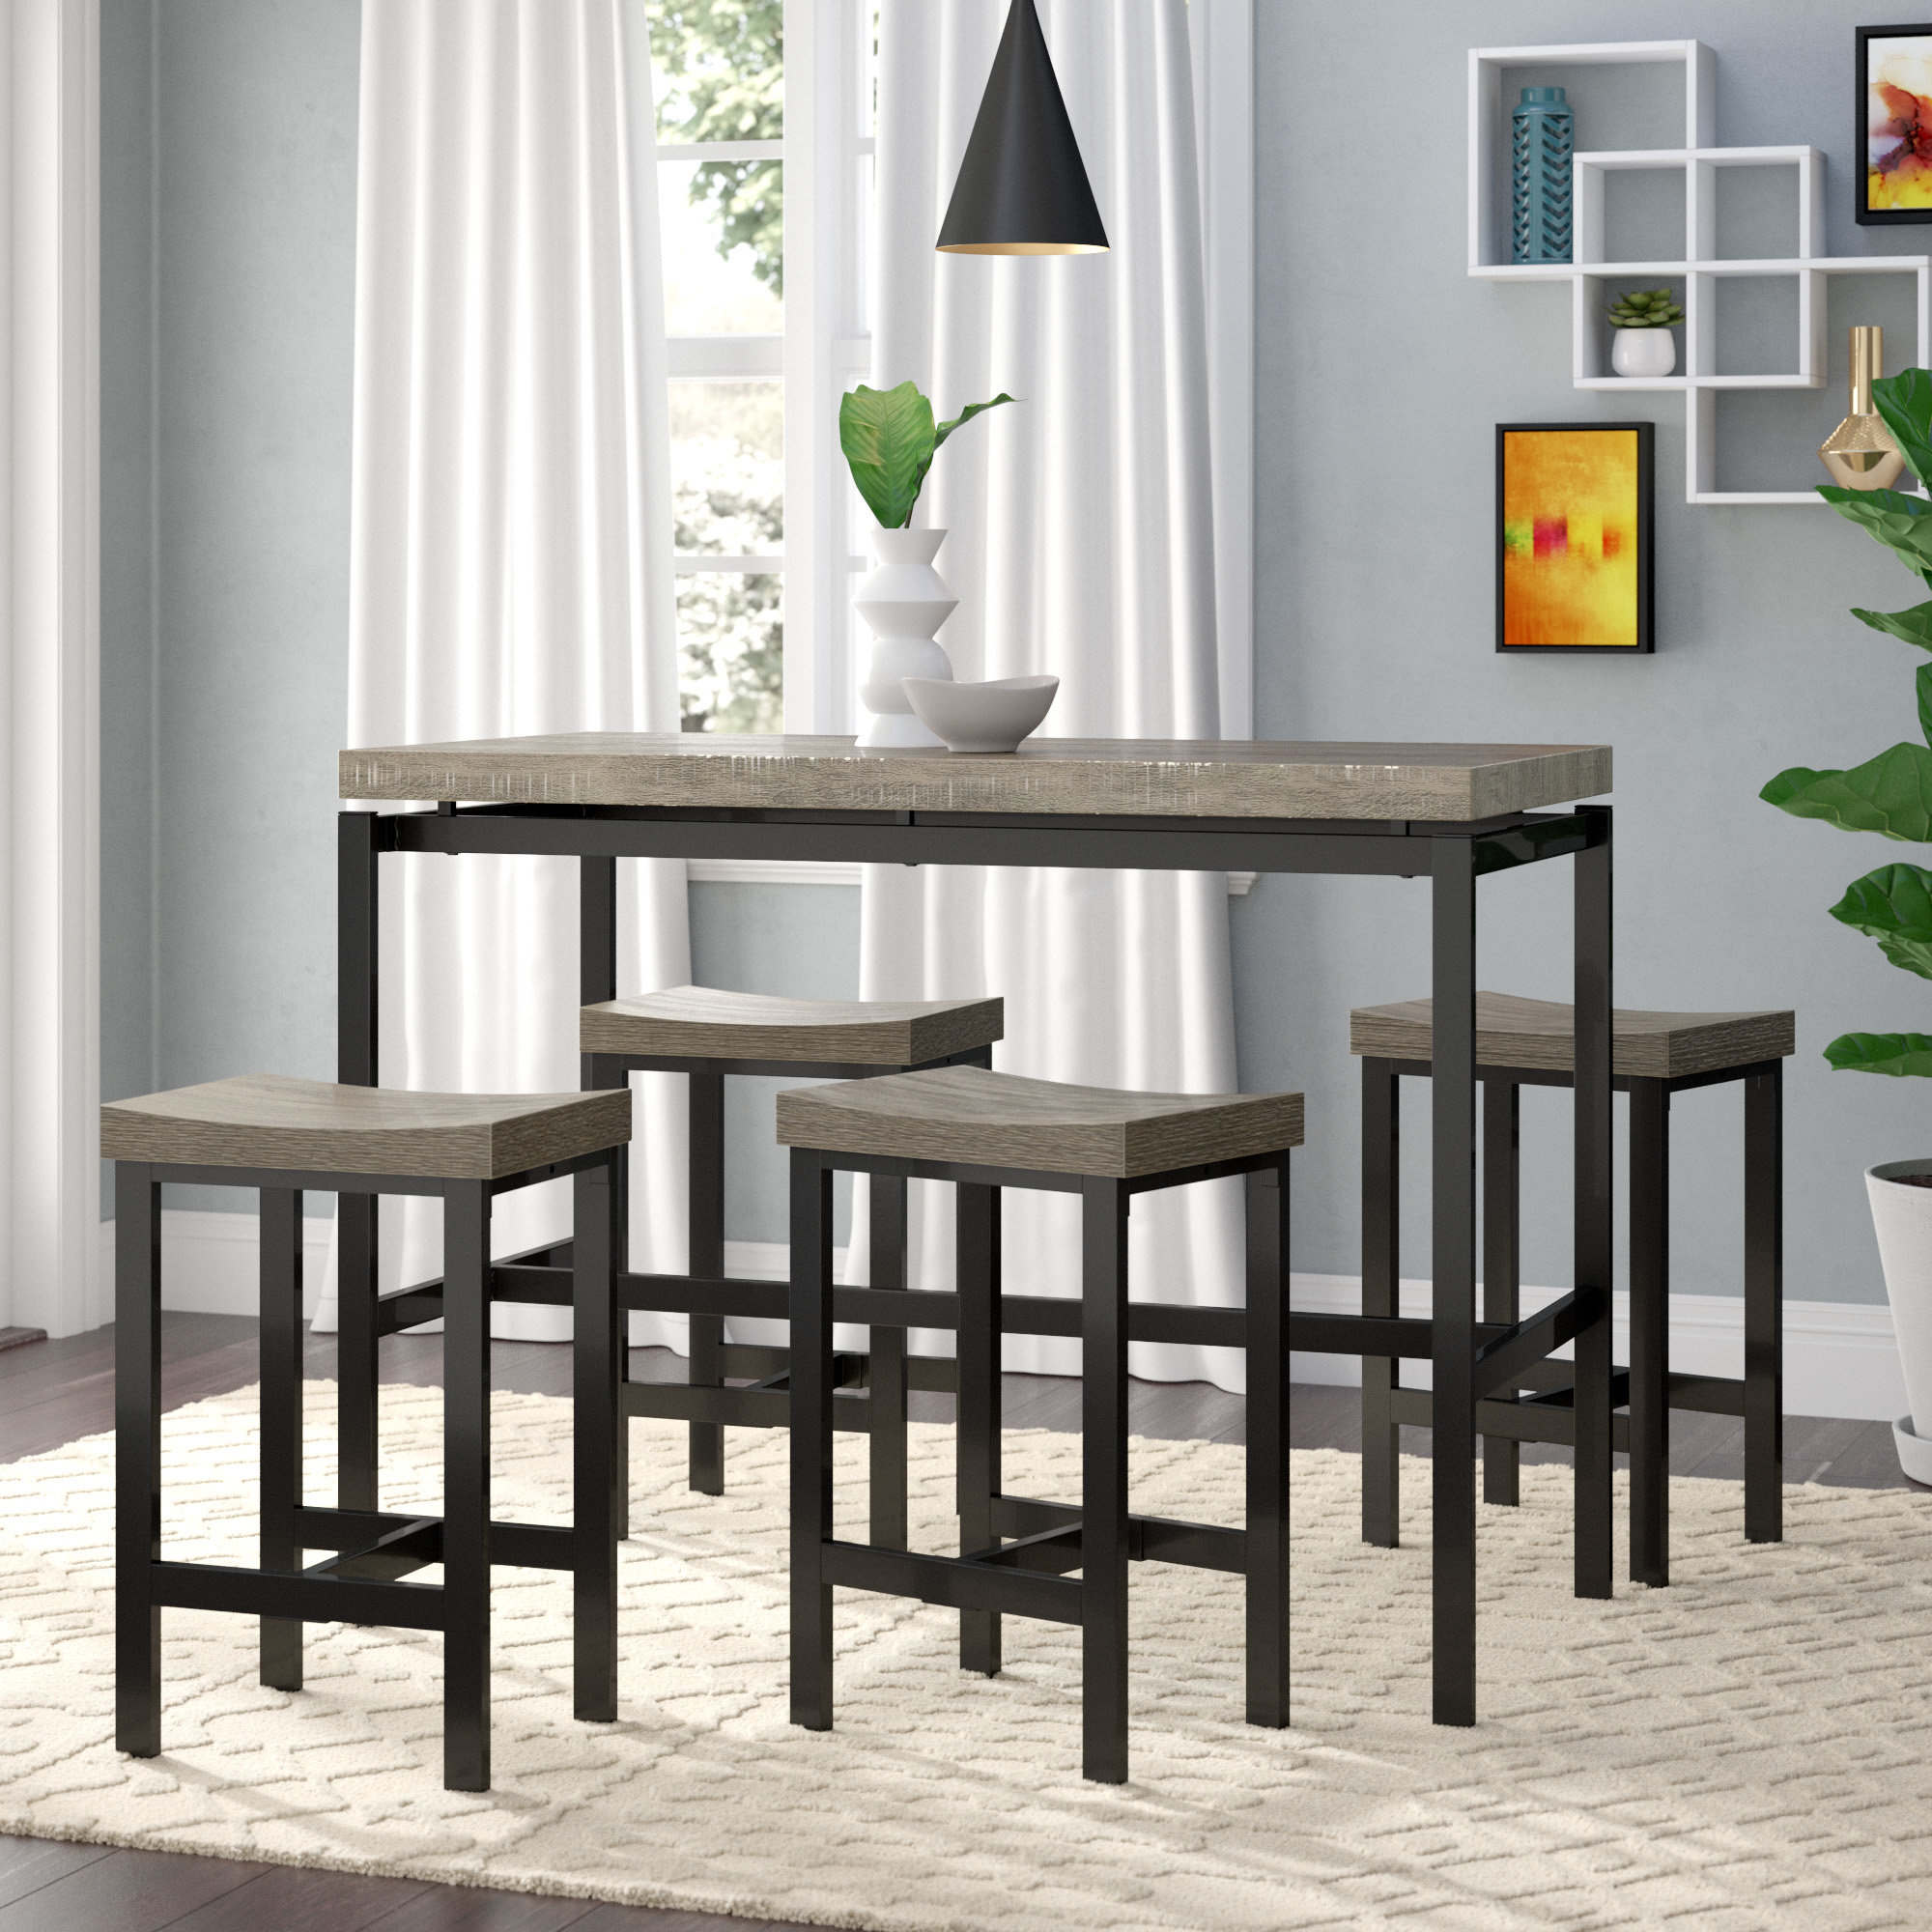 Trendy Bryson 5 Piece Dining Sets Intended For Wrought Studio Beveridge 5 Piece Dining Set & Reviews (View 9 of 20)